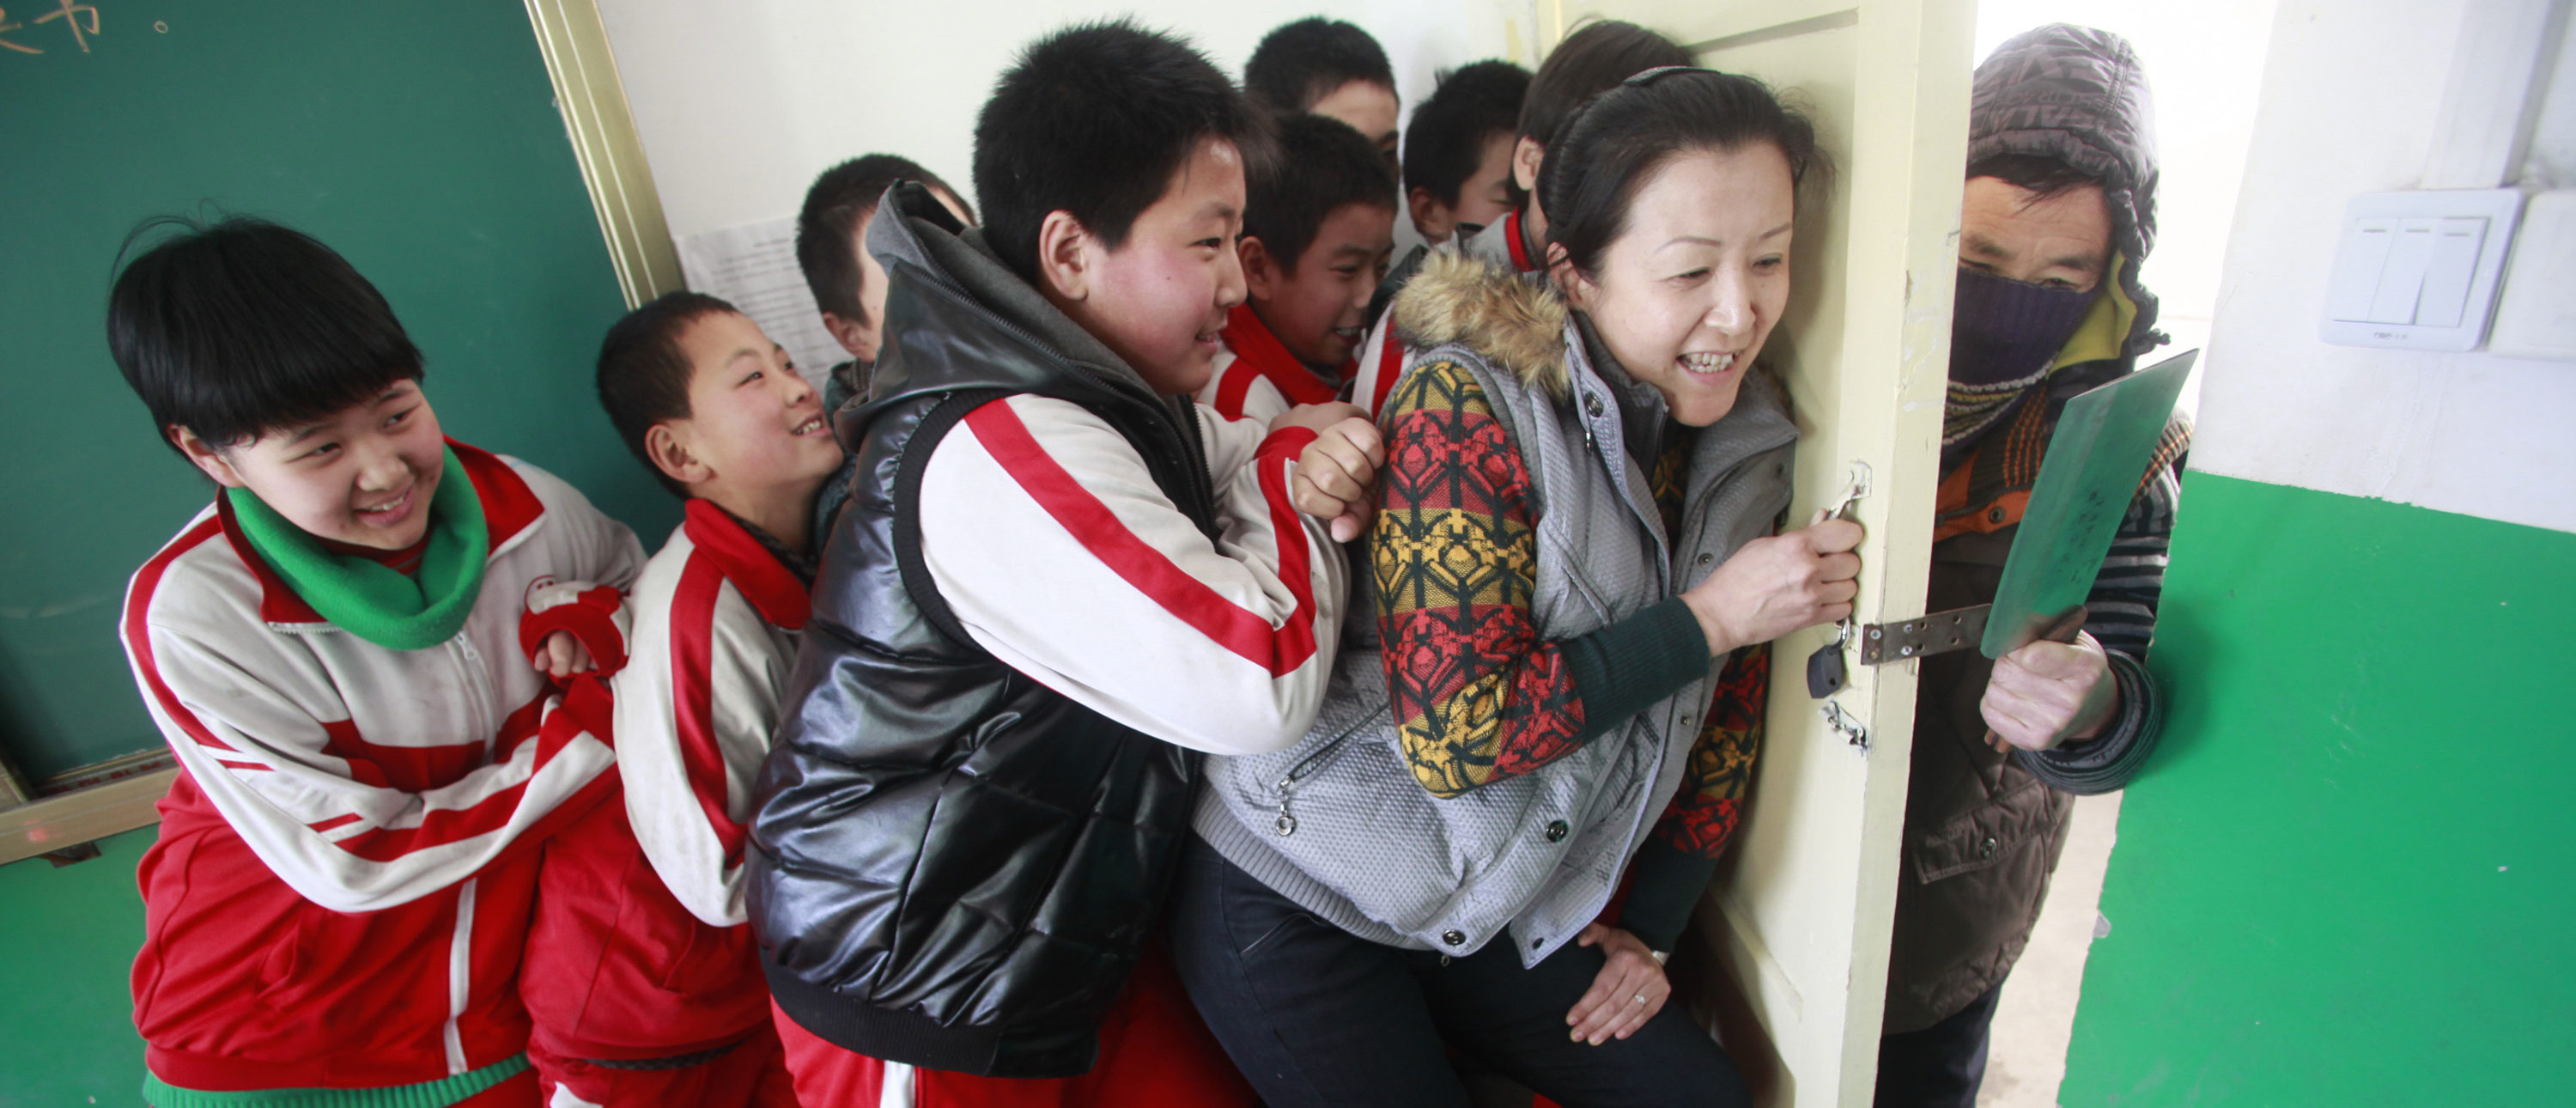 This picture taken on December 18, 2012 shows students and a teacher (2nd R) trying to stop an attacker (R) during a drill on a mock attack at a primary school in Jinan, in eastern China's Shandong province. The drill came four days after a knife-wielding attacker stabbed 22 students at a primary school in the central Chinese province of Henan on December 14 in the latest in a series of assaults. China has seen several violent attacks against children over the past two years, including a spate of five incidents in 2010 which killed 15 children and two adults and wounded more than 80. CHINA OUT AFP PHOTO (Photo credit should read STR/AFP via Getty Images)